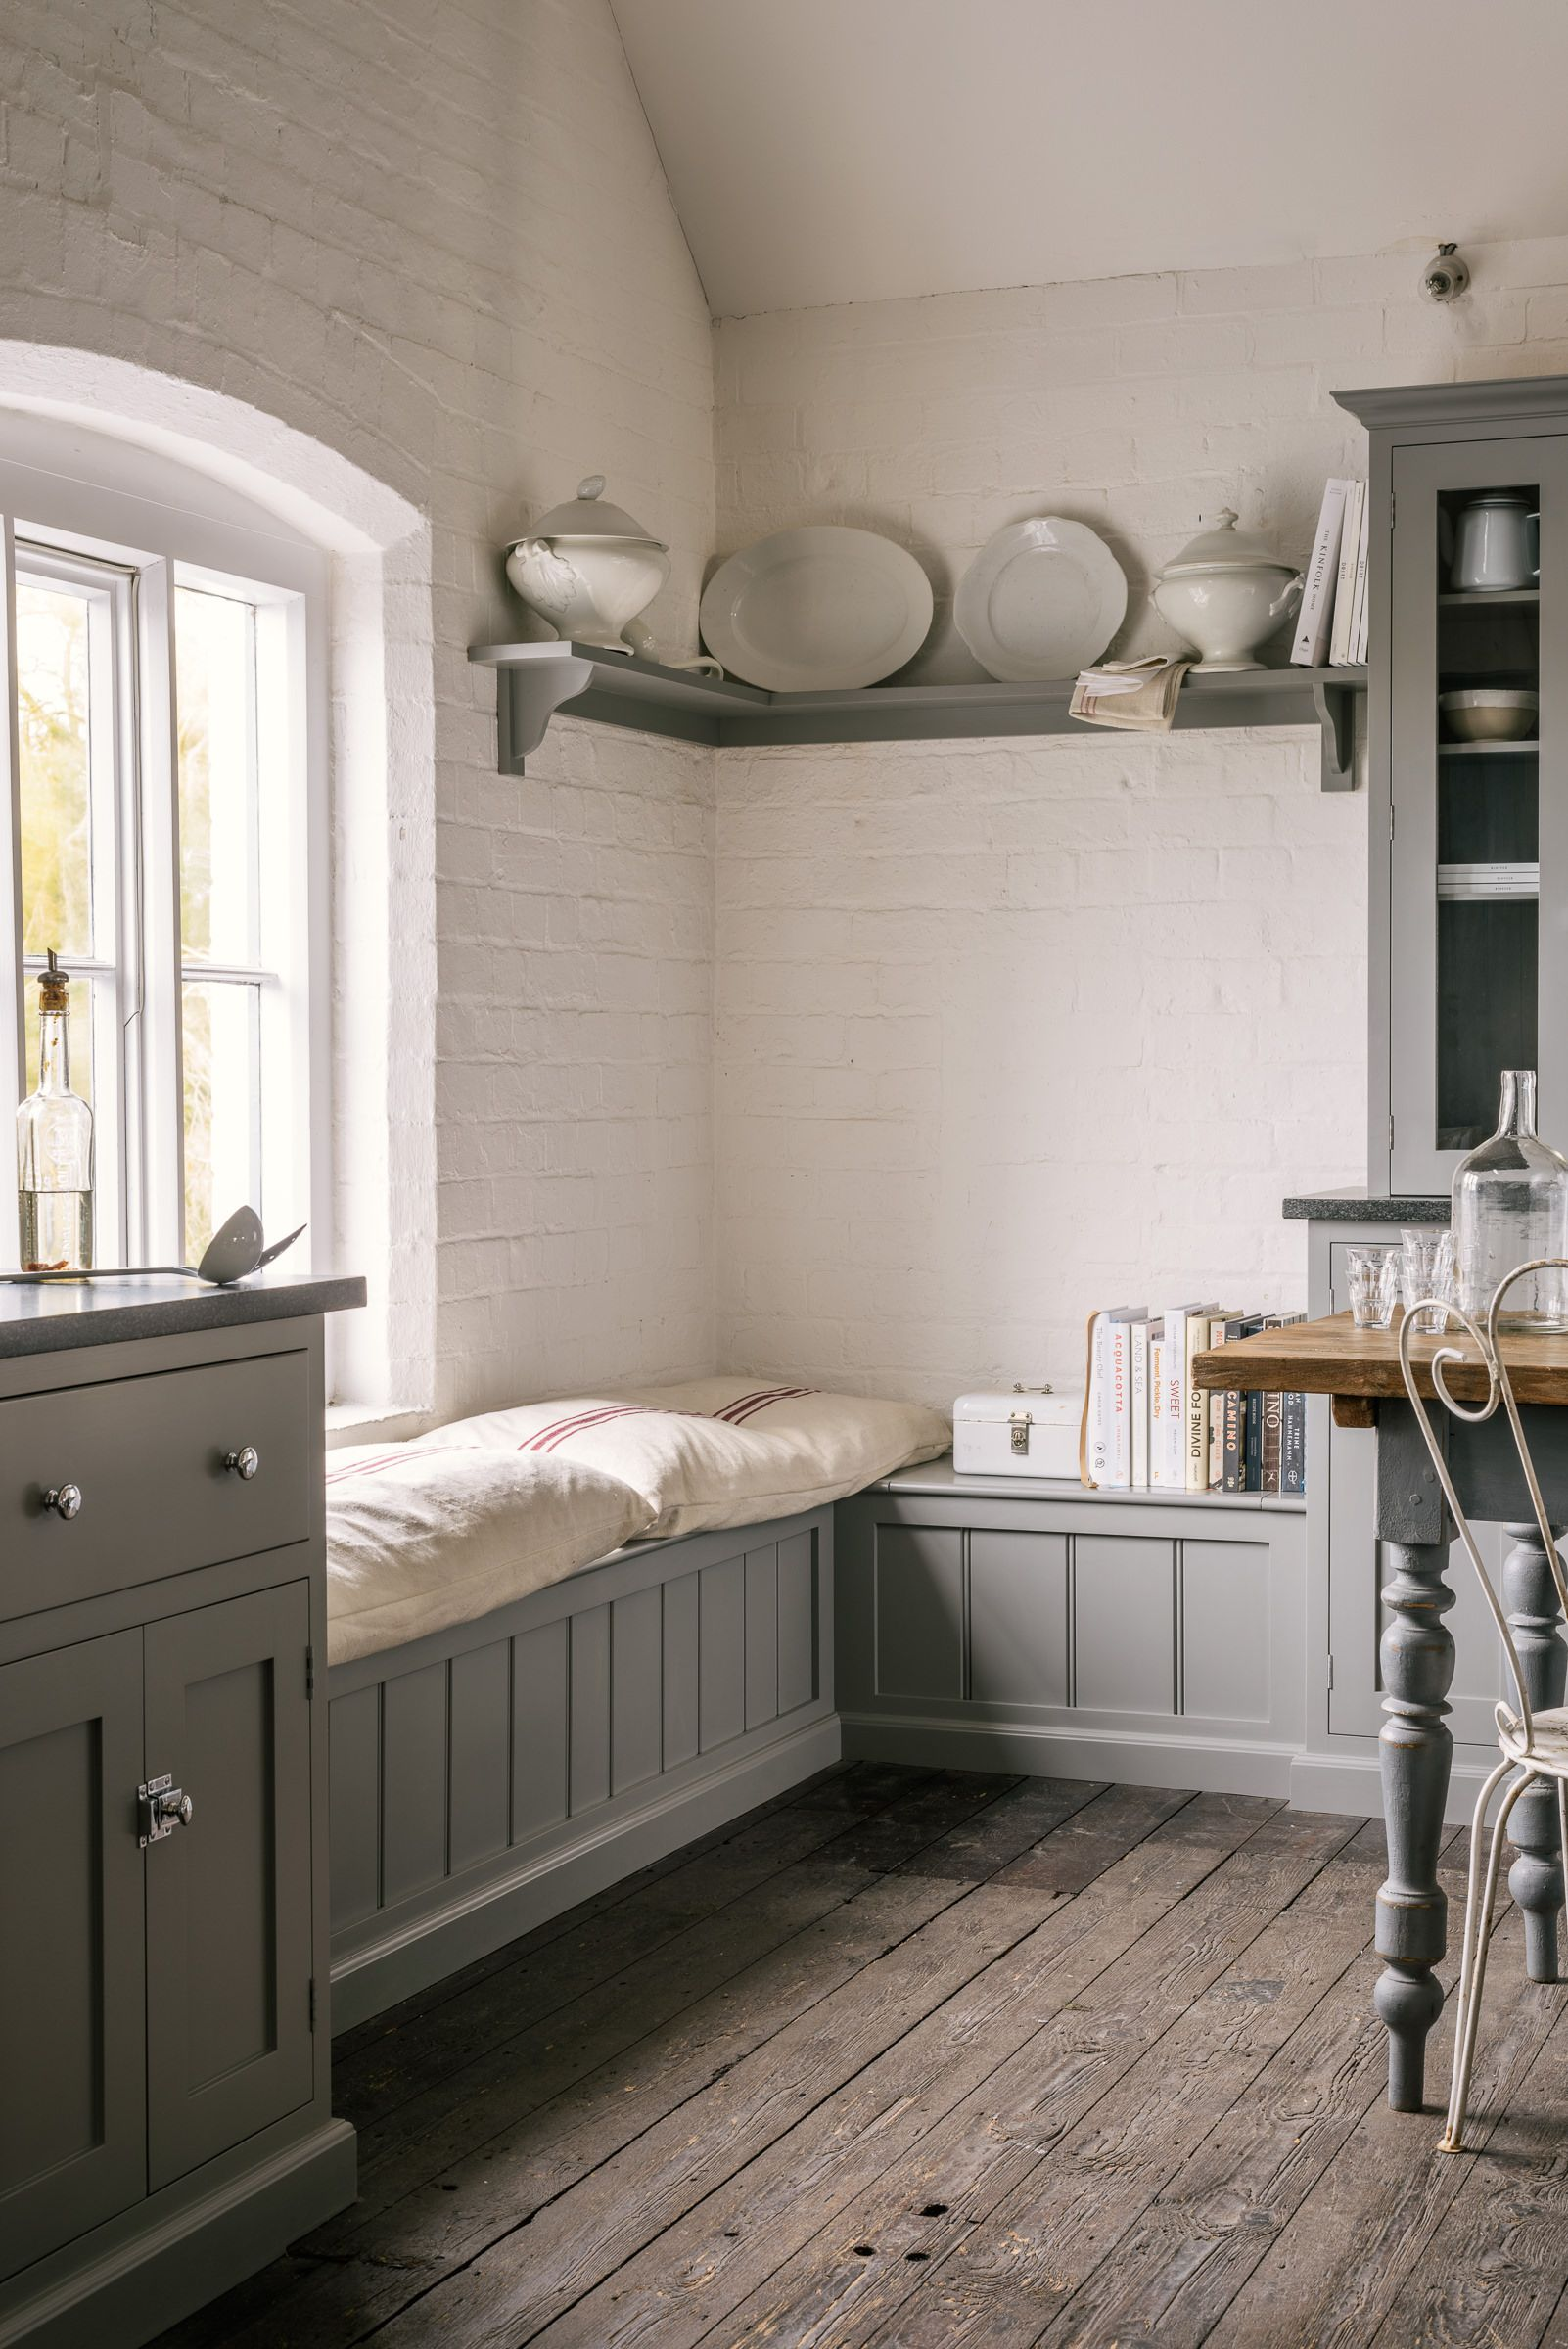 Kitchen sink without window  the perfect shaker window seat painted in soft grey with big squidgy